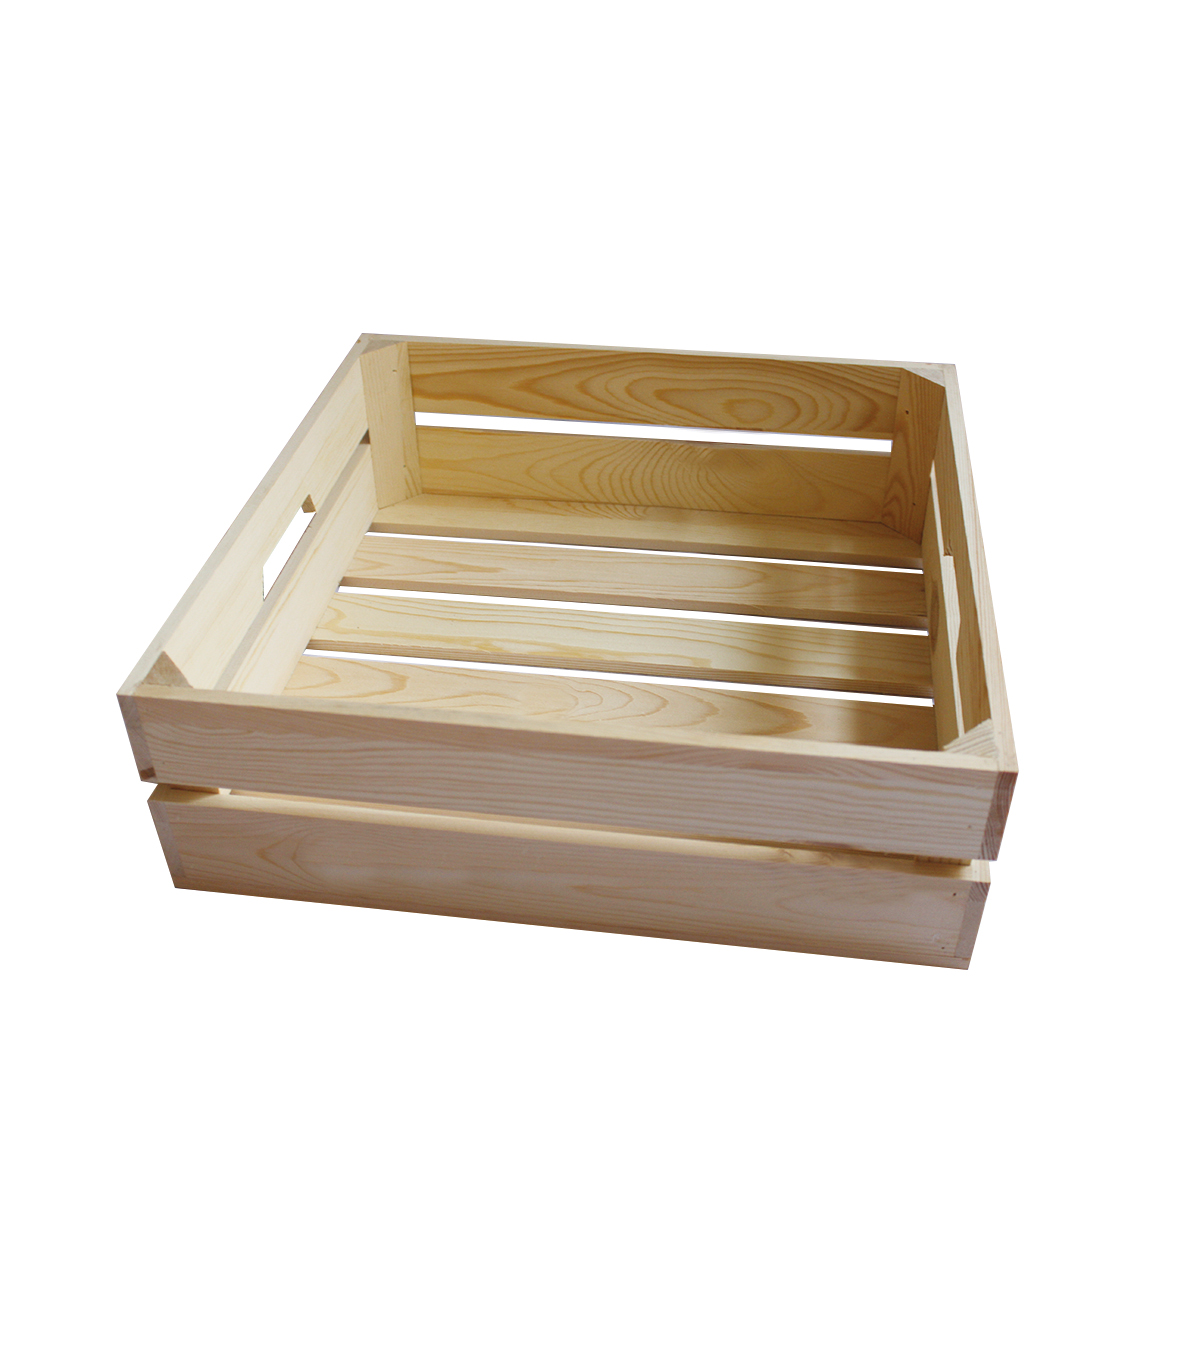 Large Shallow Pine Wood Crate